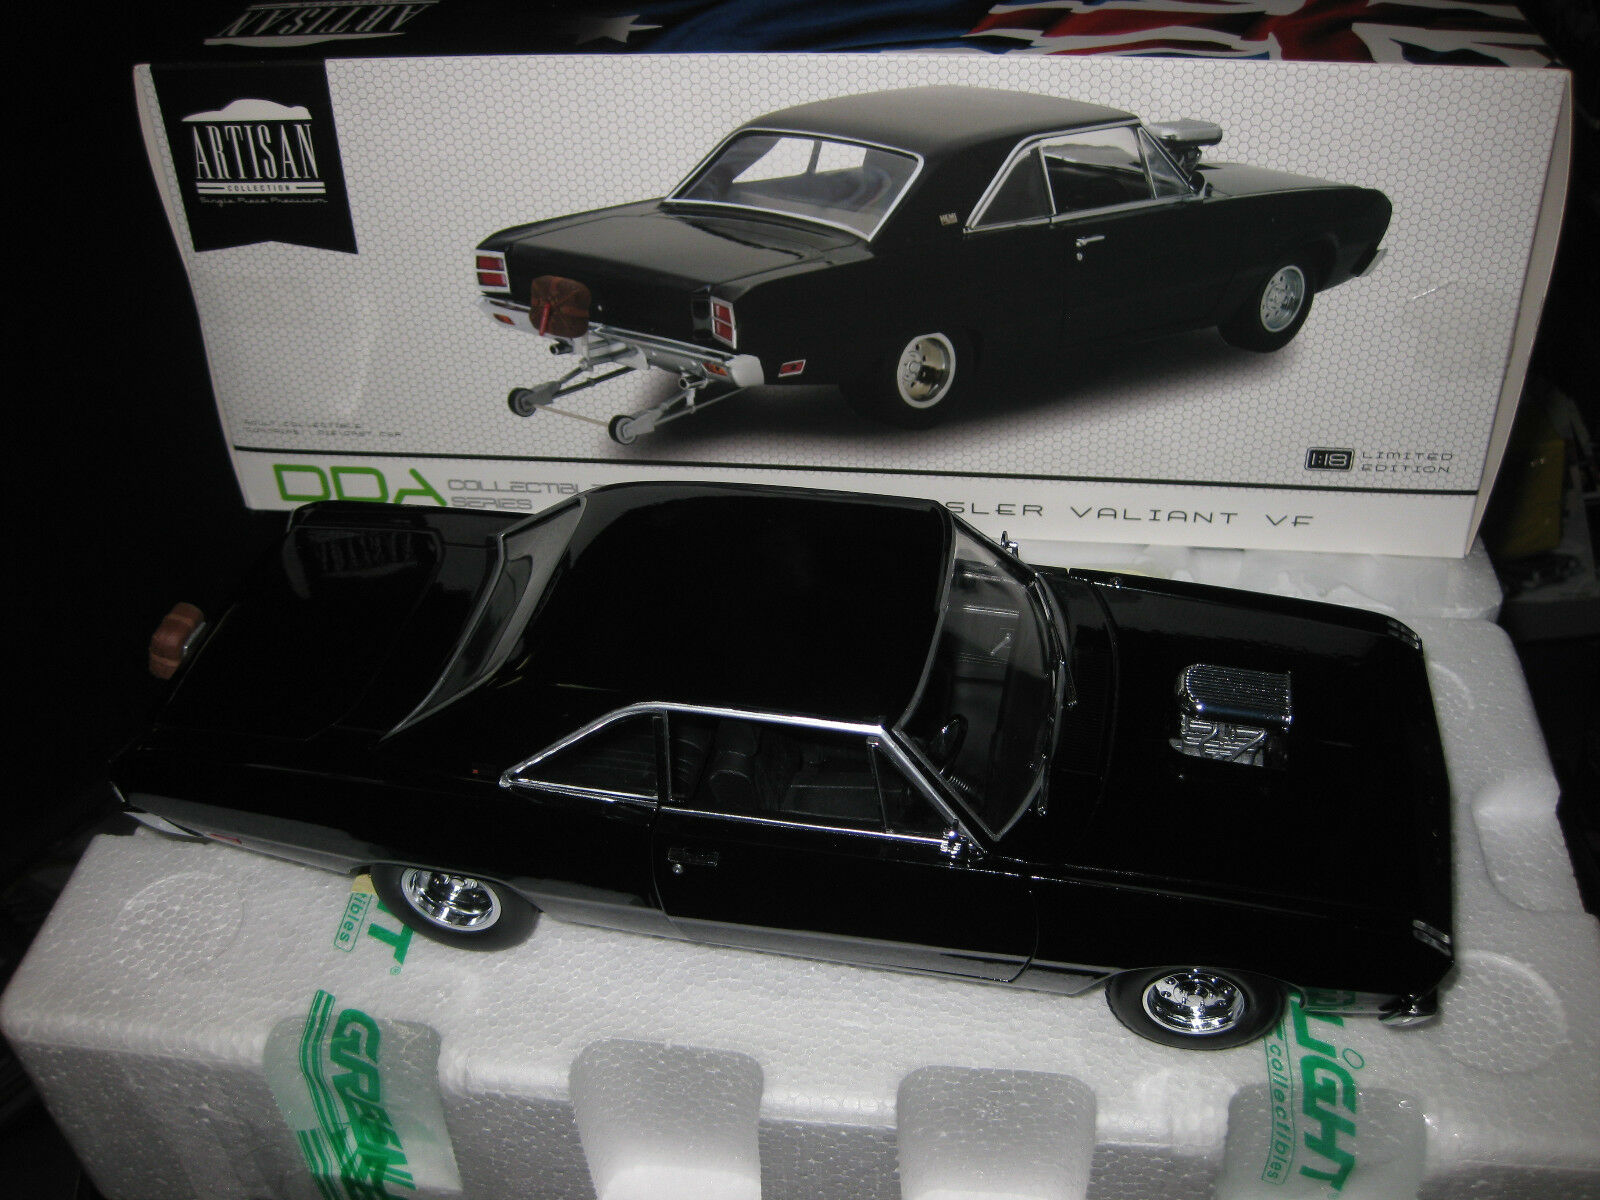 1 18 verdeLIGHT DDA 1969 CHRYSLER VALIANT VF PACER  HEMI DRAG CAR negro LTD ED